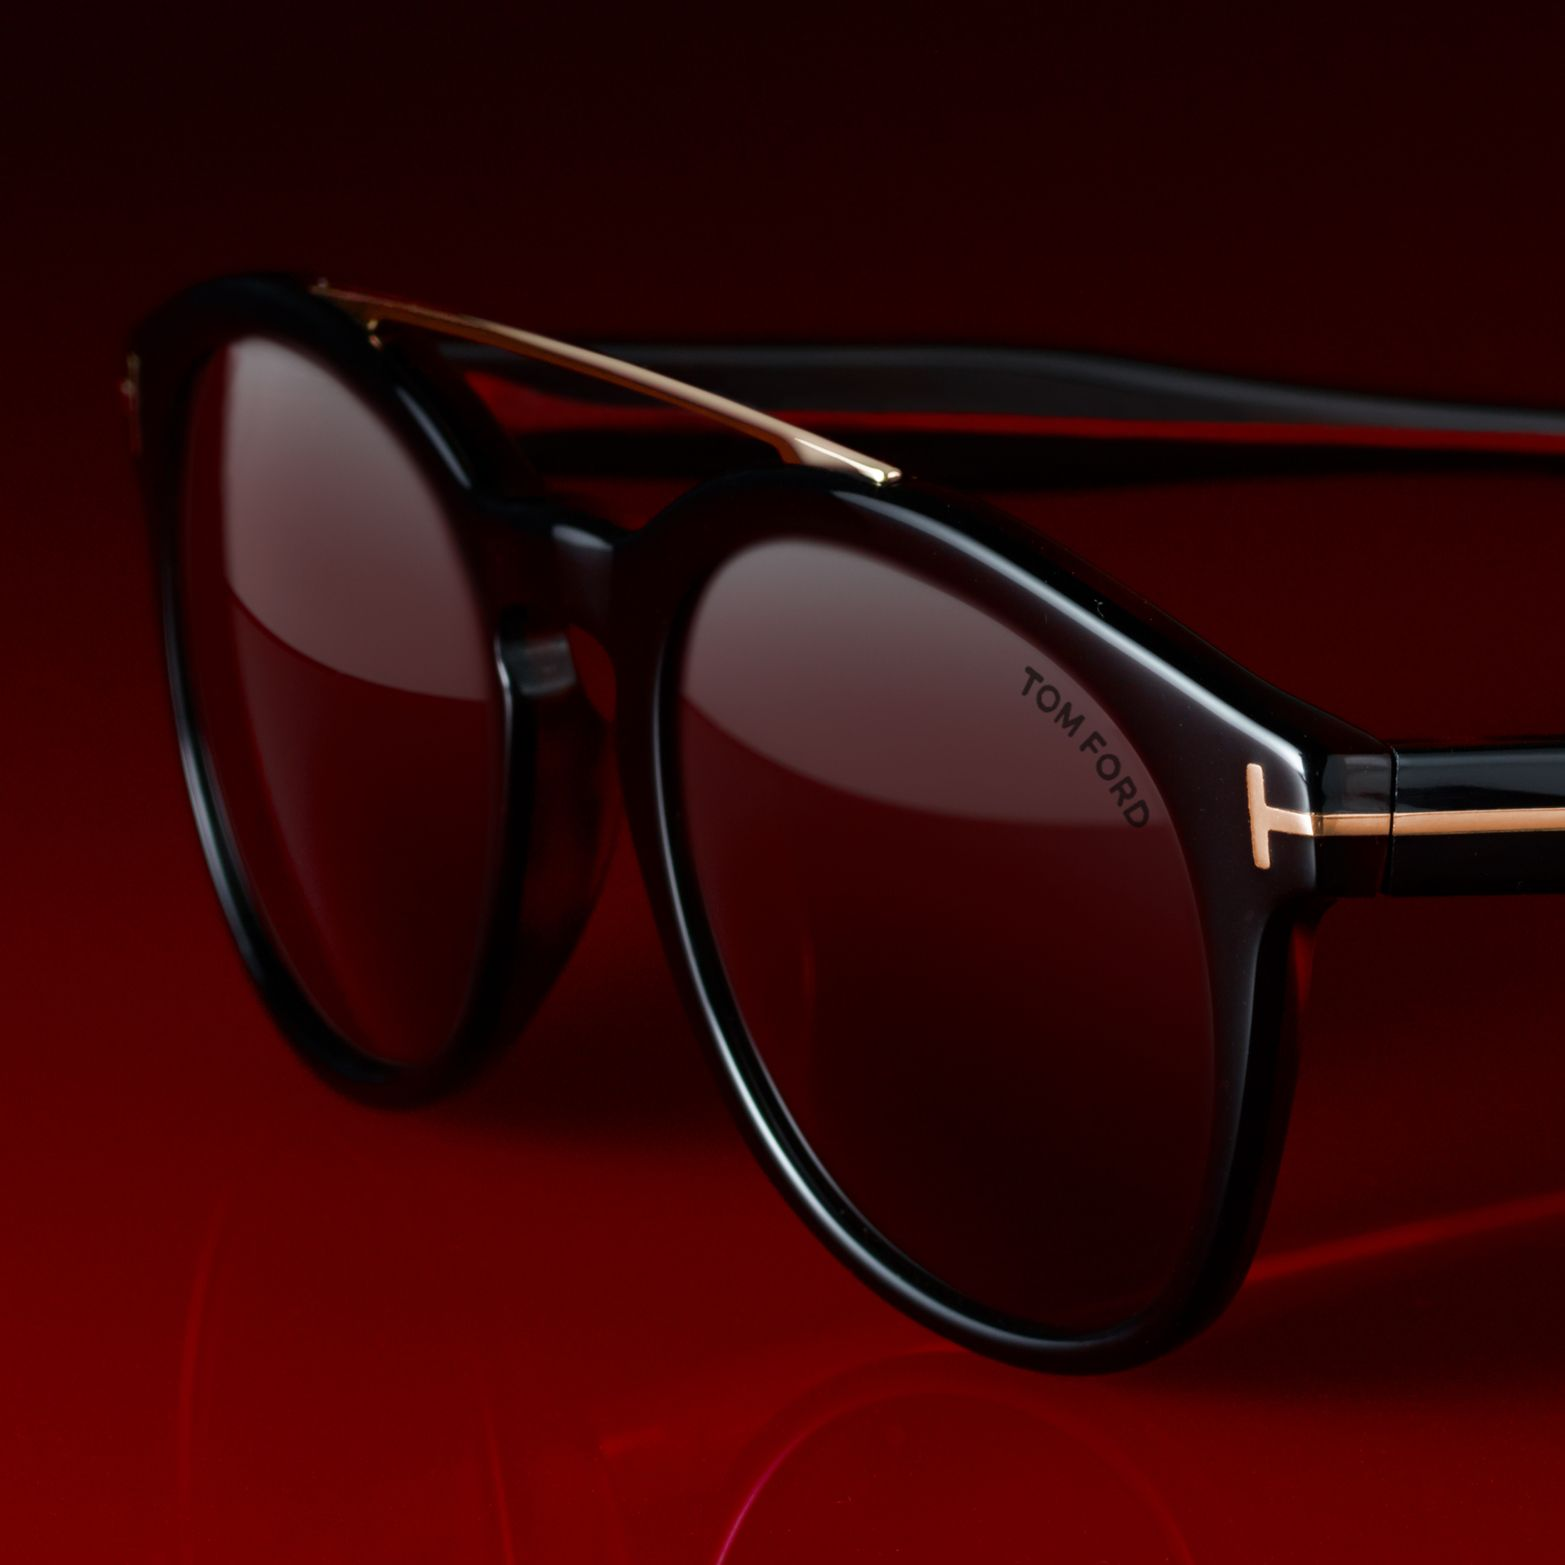 Newman sunglasses with polarized lenses | Brille